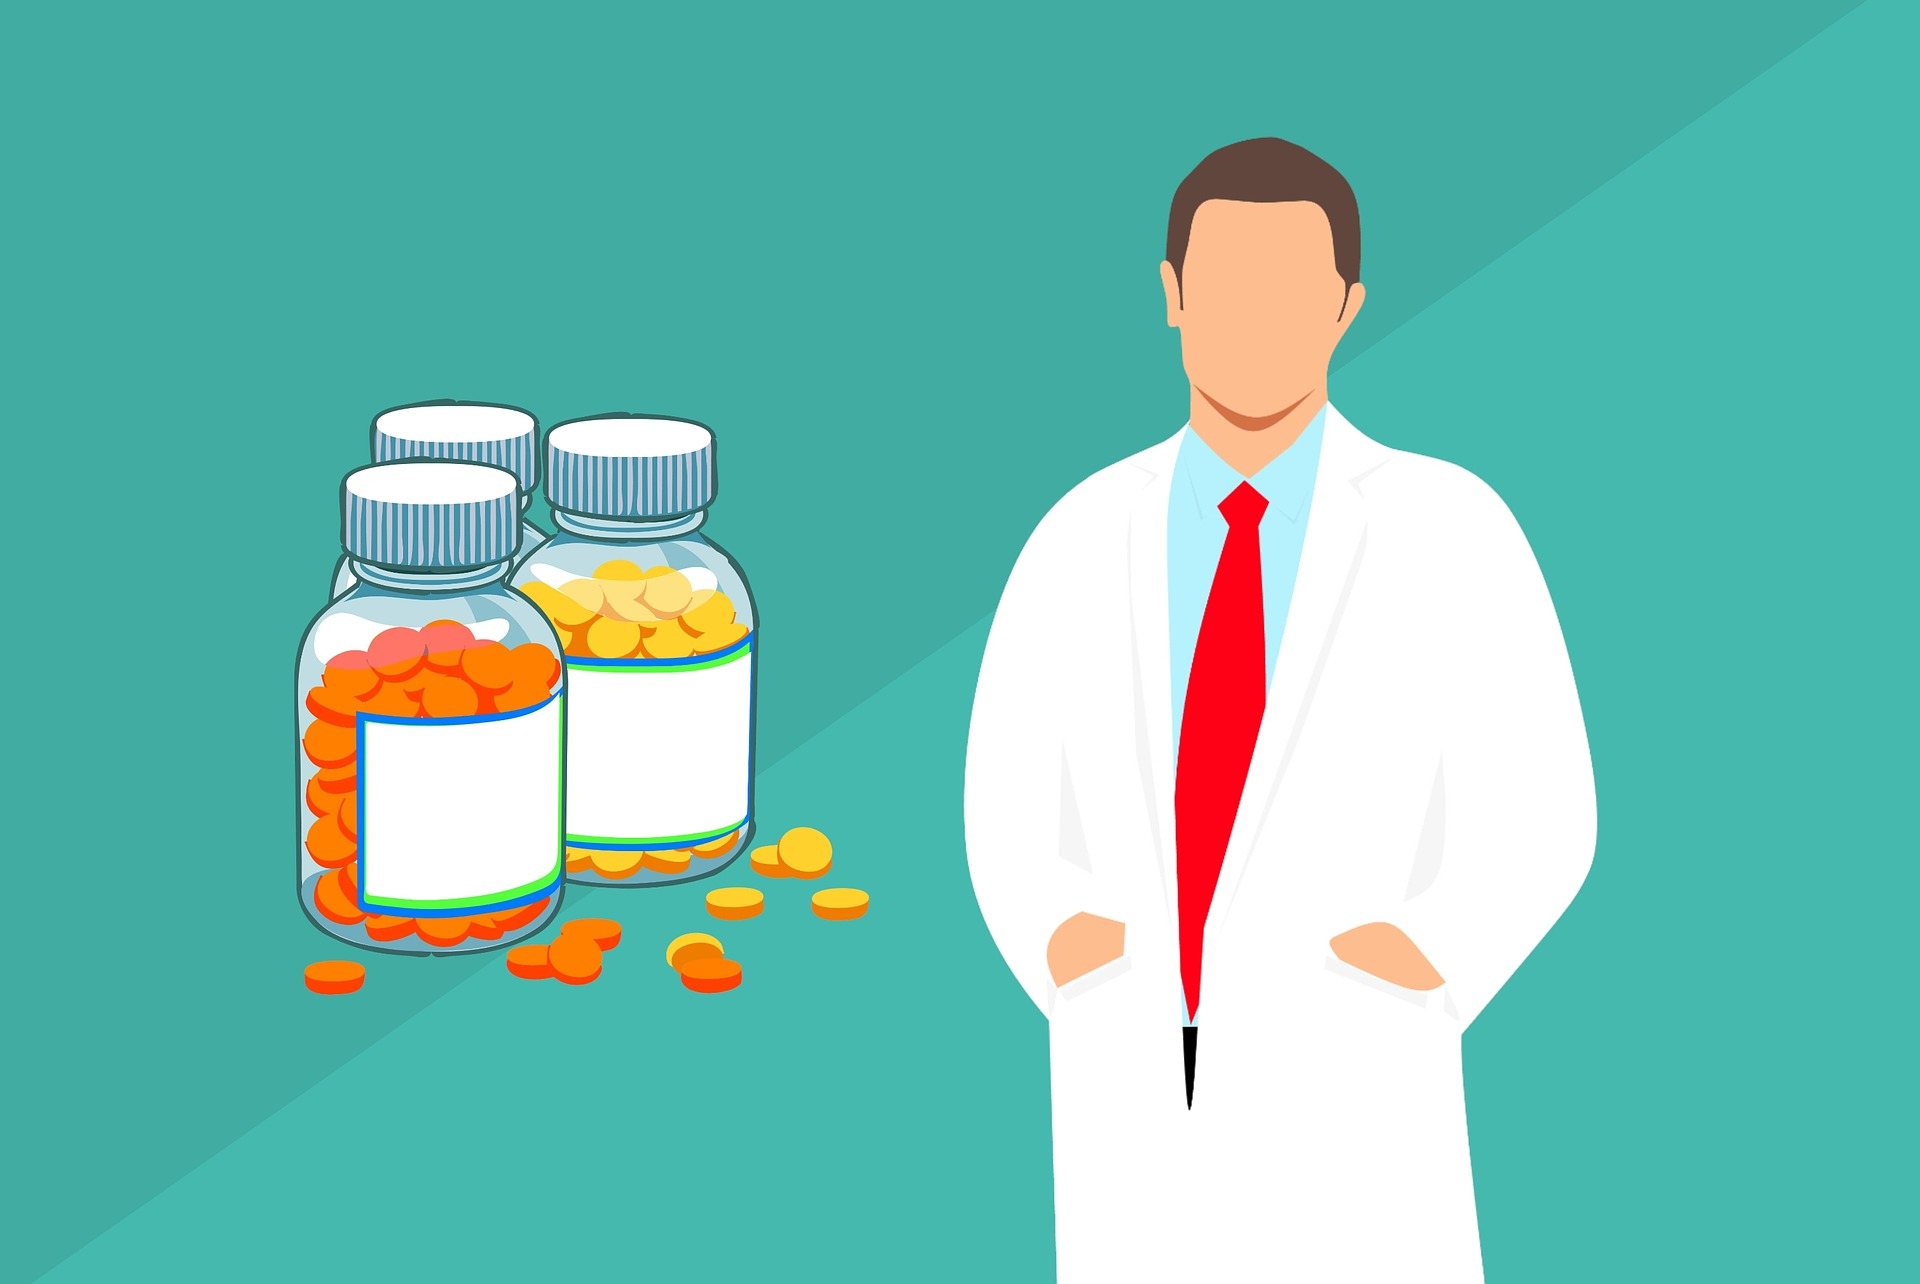 Welcome to my article where I will be telling you 2 side effects of taking fat-burning supplements that you need to know as many people may not be aware of as this is a topic that is not never talked about.